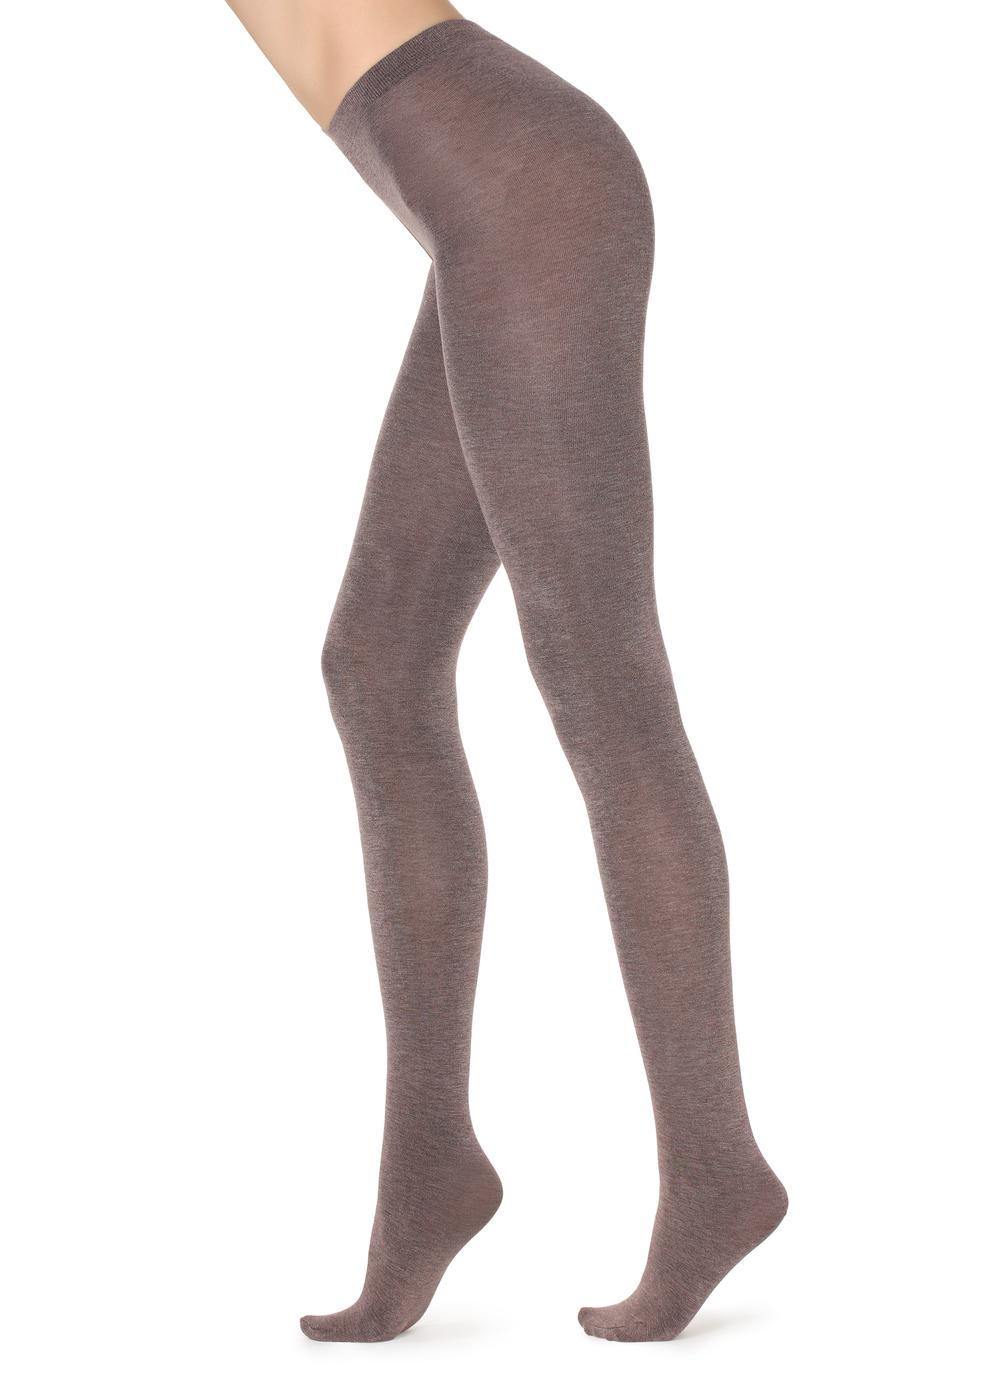 Super Opaque Tights with Cashmere